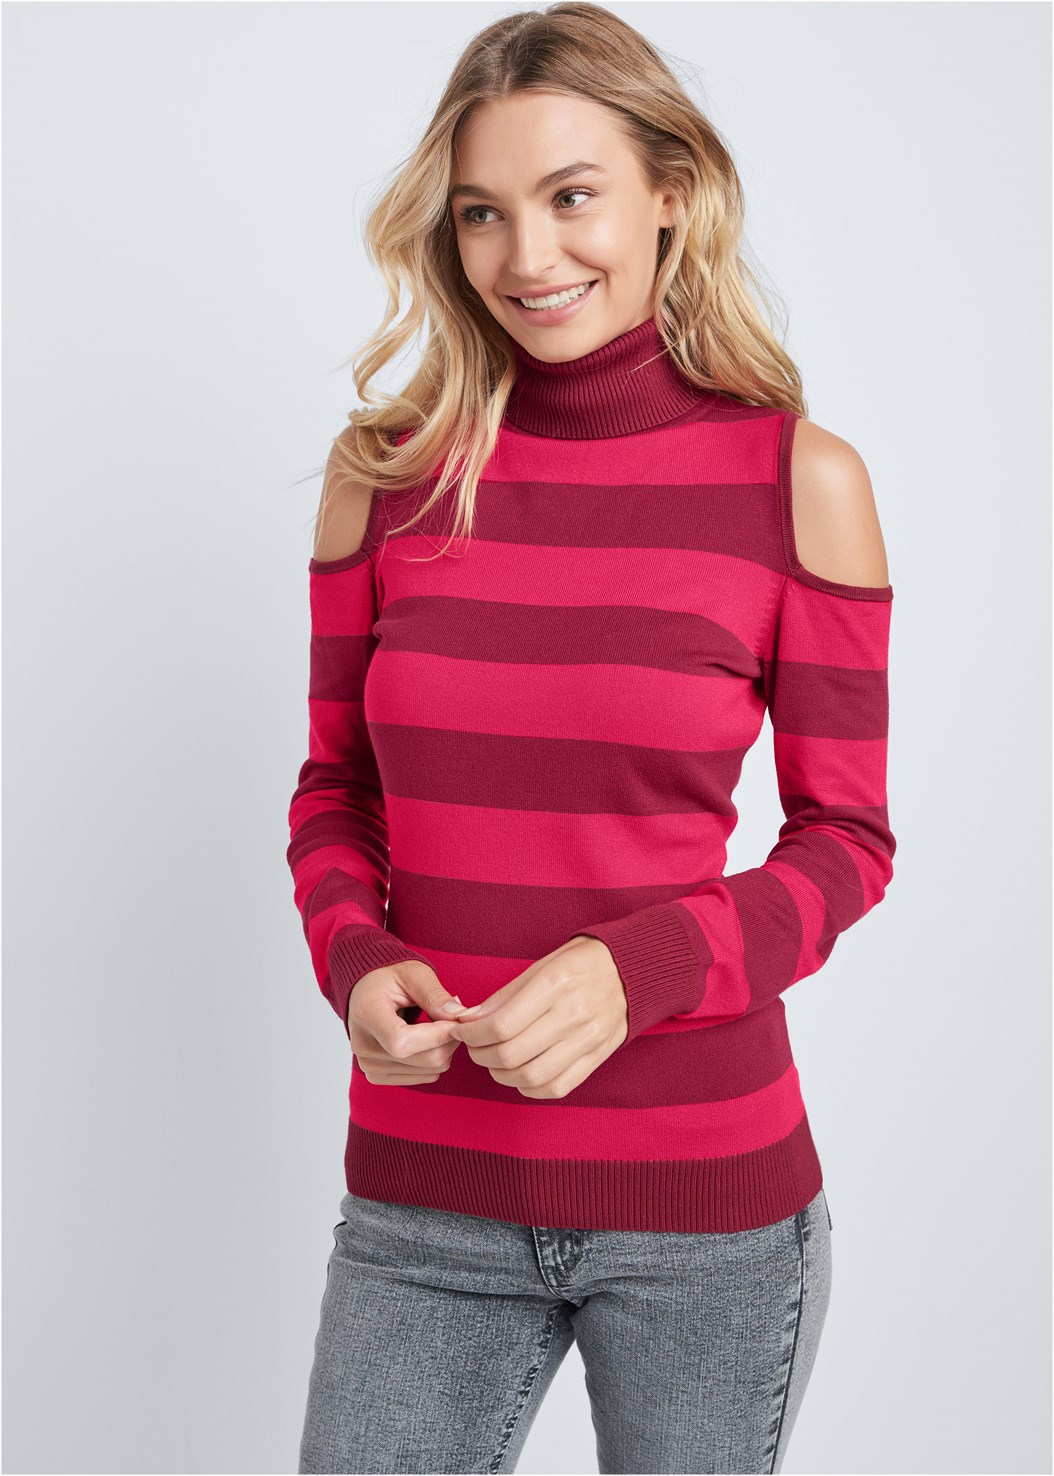 Striped Turtleneck Sweater,Washed Kick Flare Jeans,Casual Bootcut Jeans,Push Up Bra Buy 2 For $40,Open Heel Booties